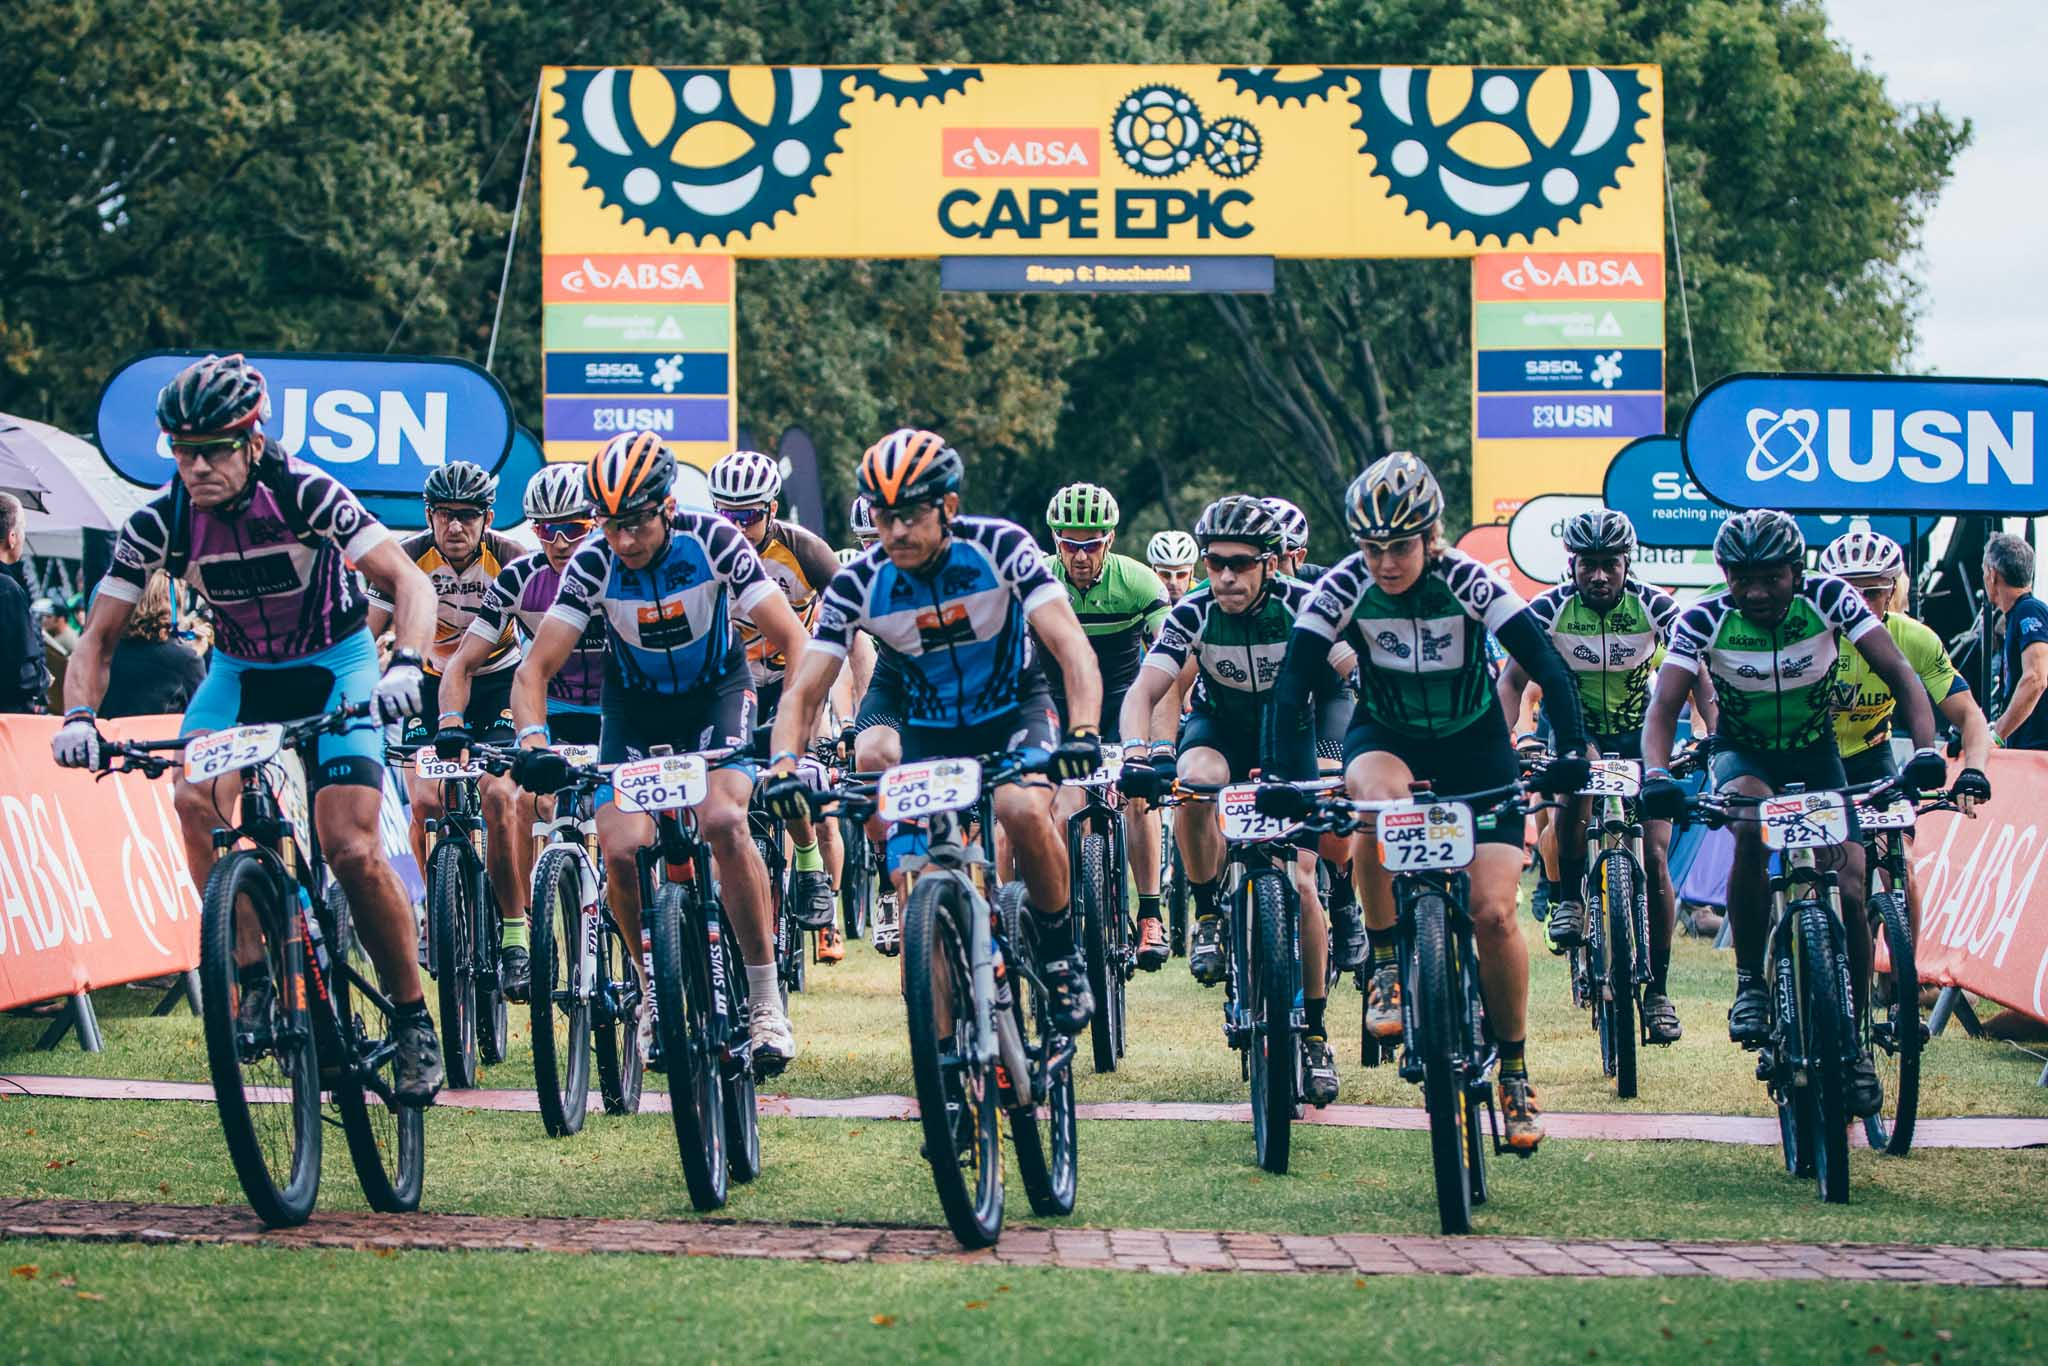 A batch departs the start chute during stage 6 of the 2016 Absa Cape Epic Mountain Bike stage race from Boschendal in Stellenbosch, South Africa on the 19th March 2015 Photo by Ewald Sadie/Cape Epic/SPORTZPICS PLEASE ENSURE THE APPROPRIATE CREDIT IS GIVEN TO THE PHOTOGRAPHER AND SPORTZPICS ALONG WITH THE ABSA CAPE EPIC {ace2016}